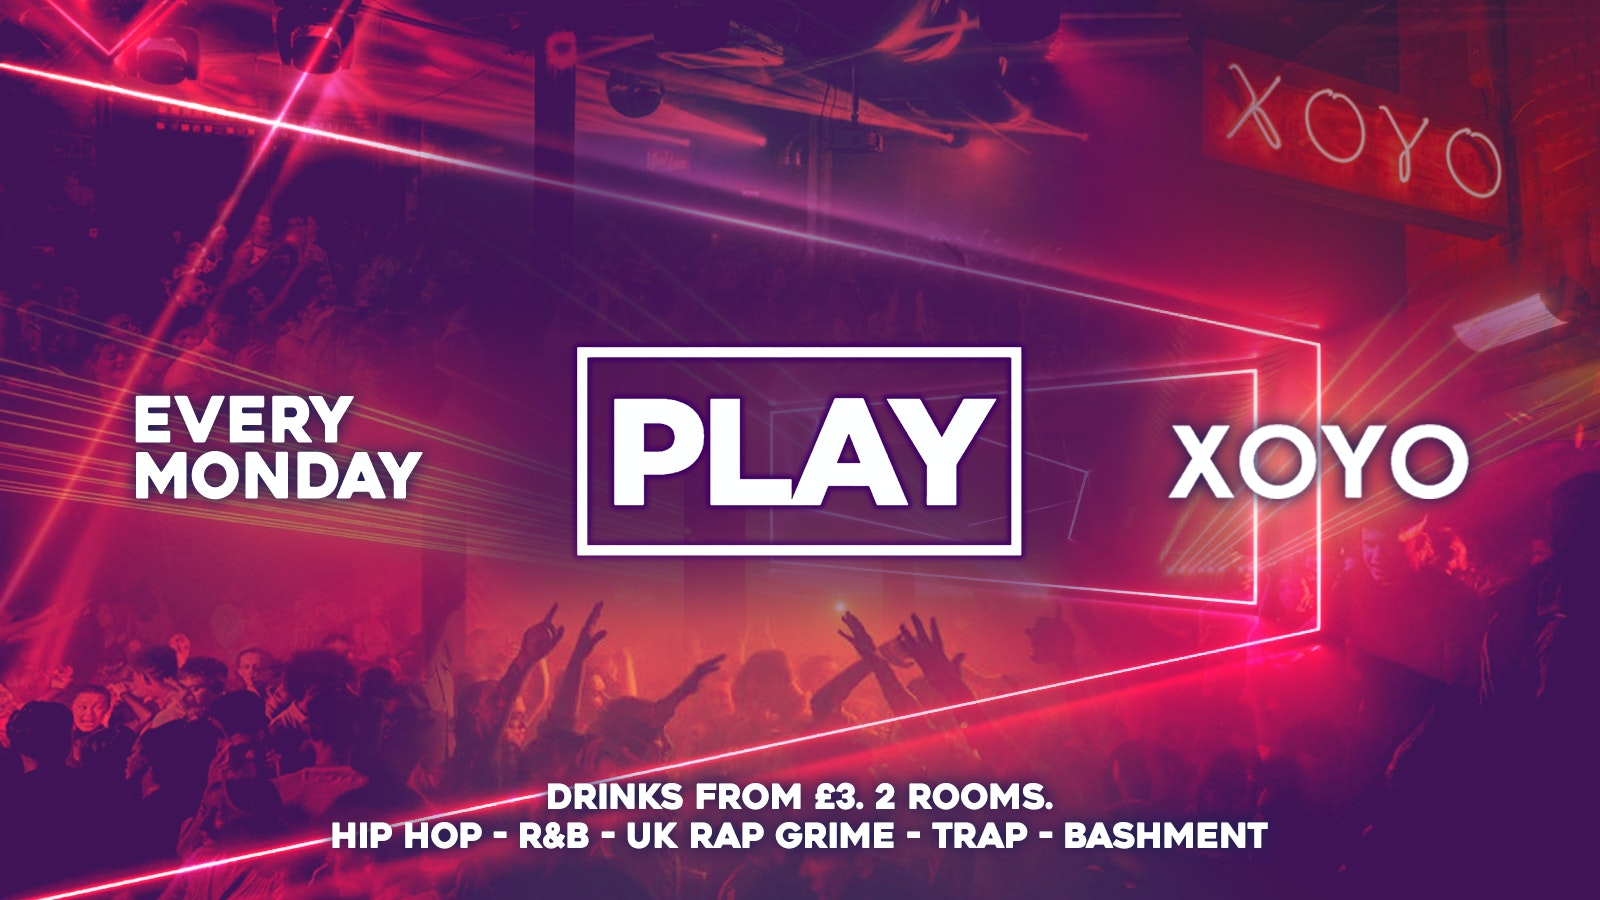 Play London is BACK! The Biggest Weekly Monday Student Night in London // This event will SELL OUT